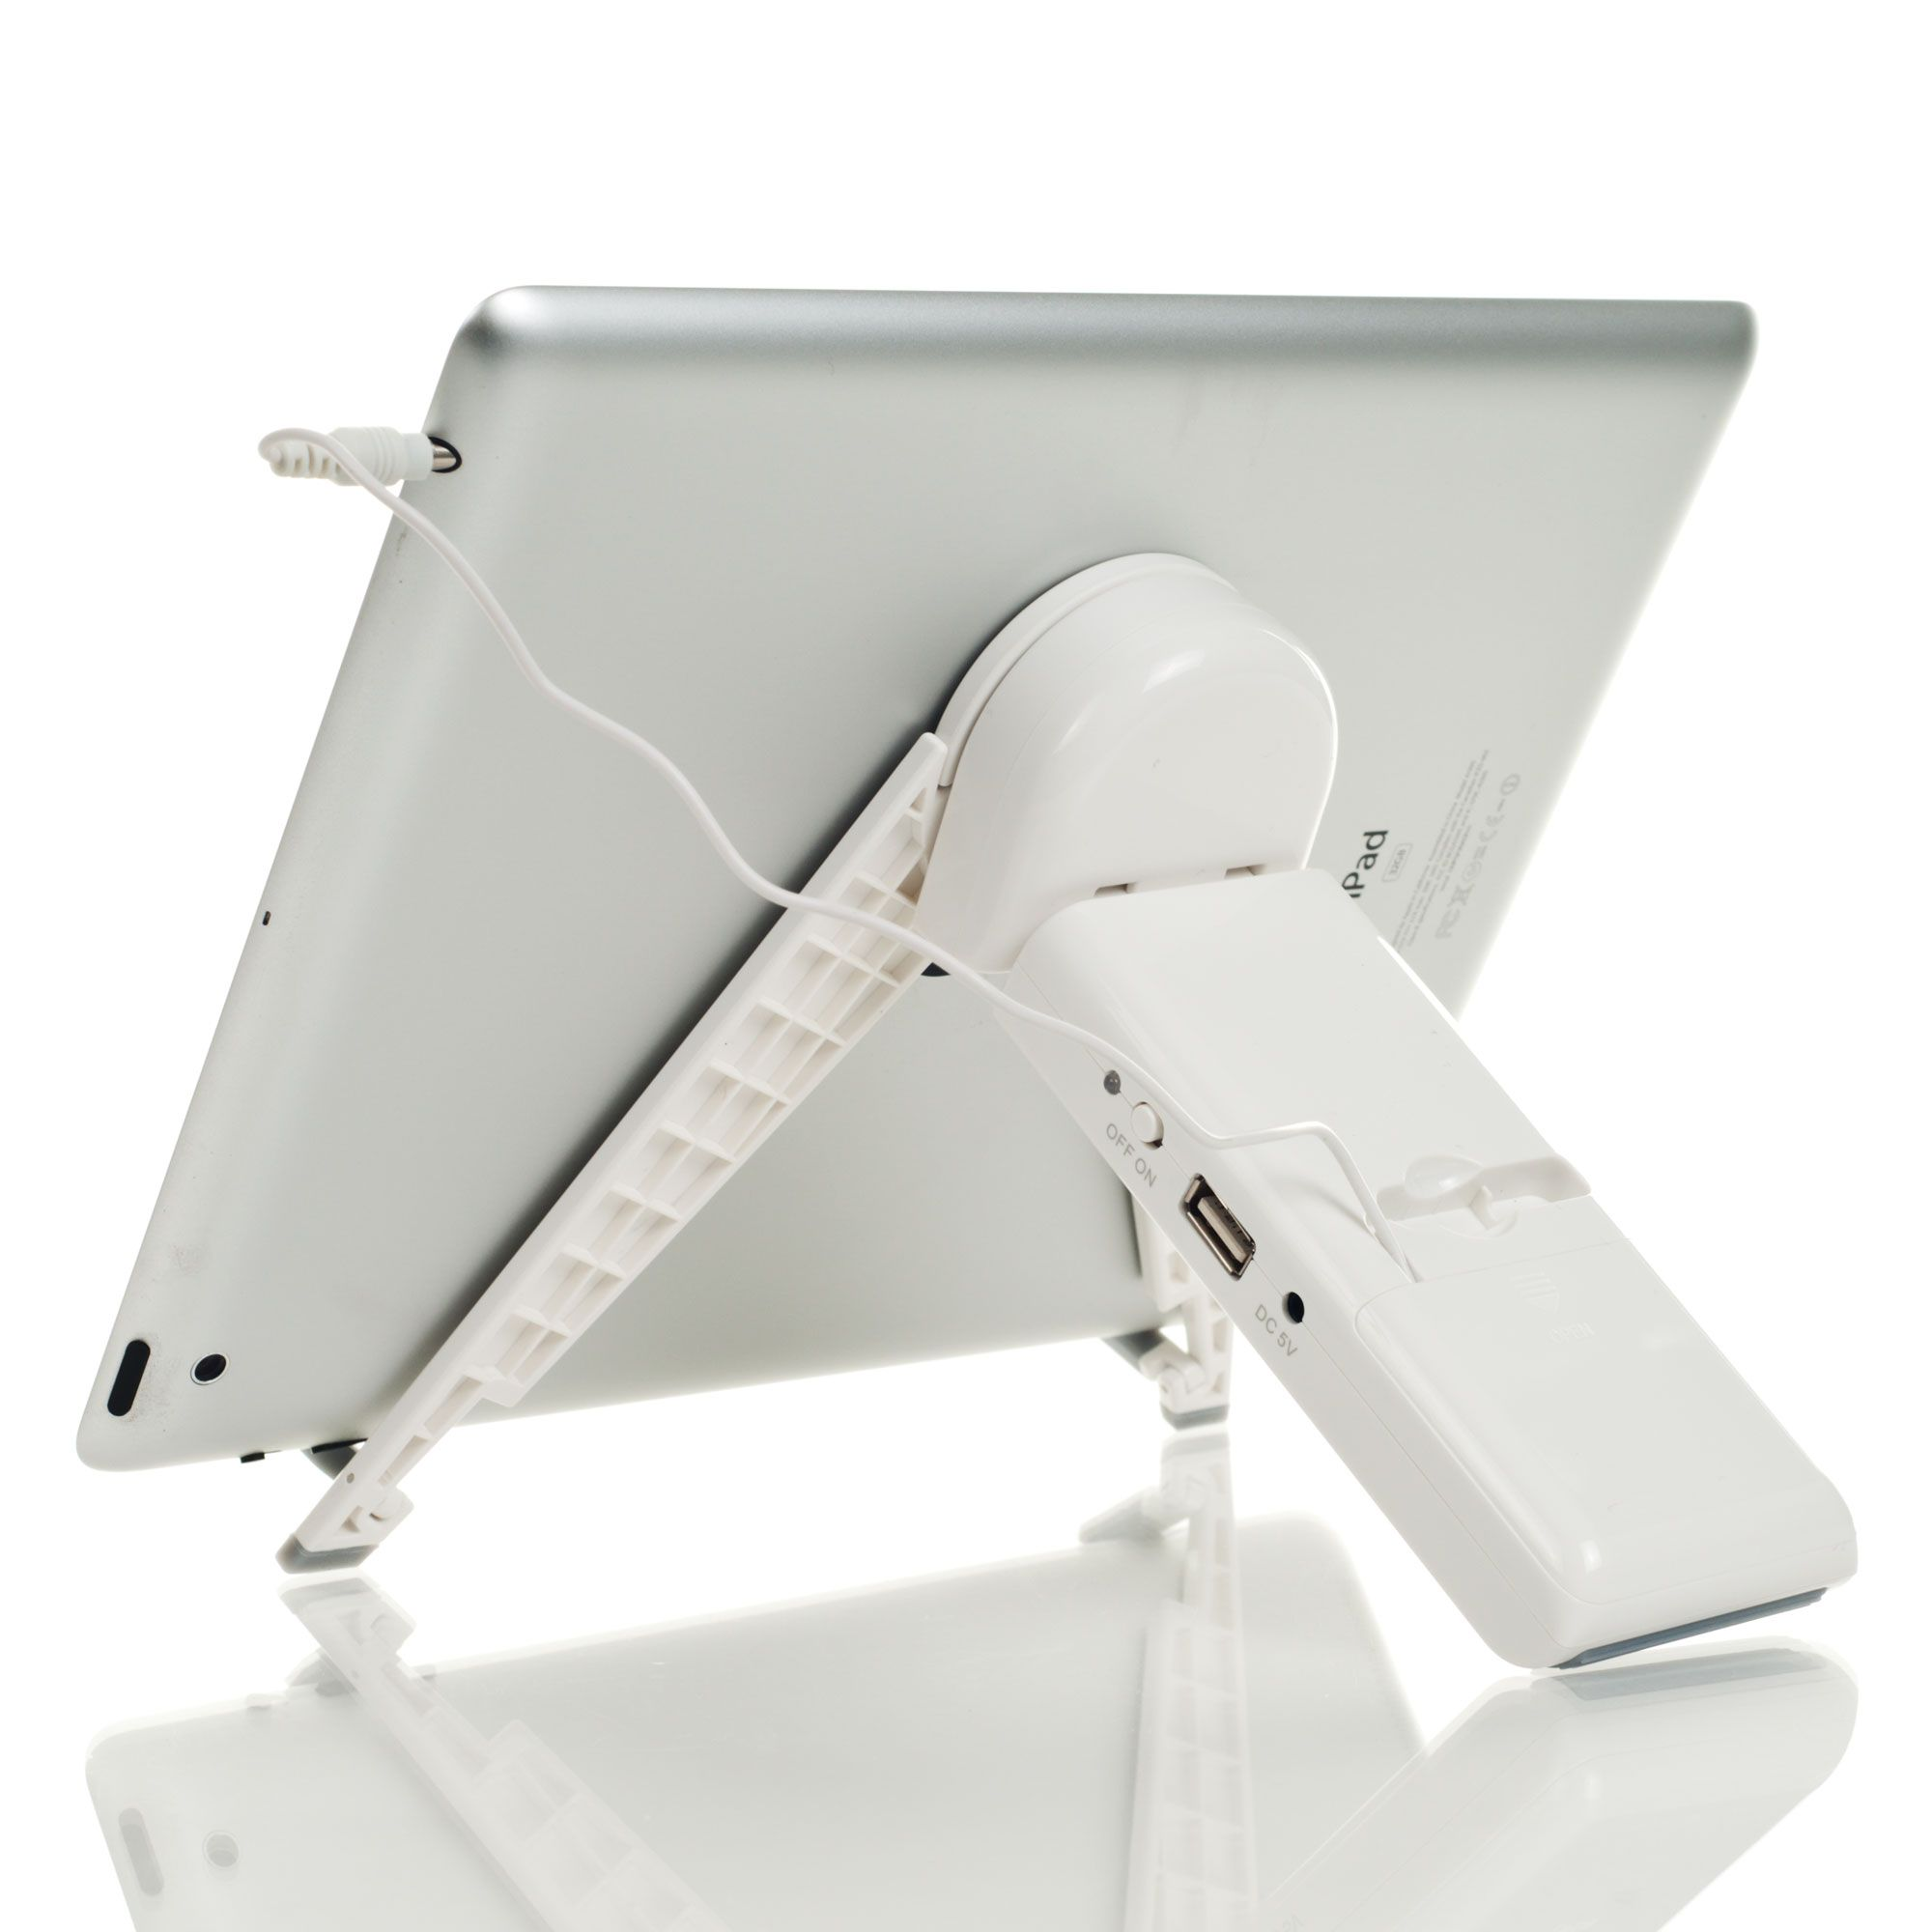 TGT Kick It Stand iPad & Tablet USB Powered Stand & Speaker